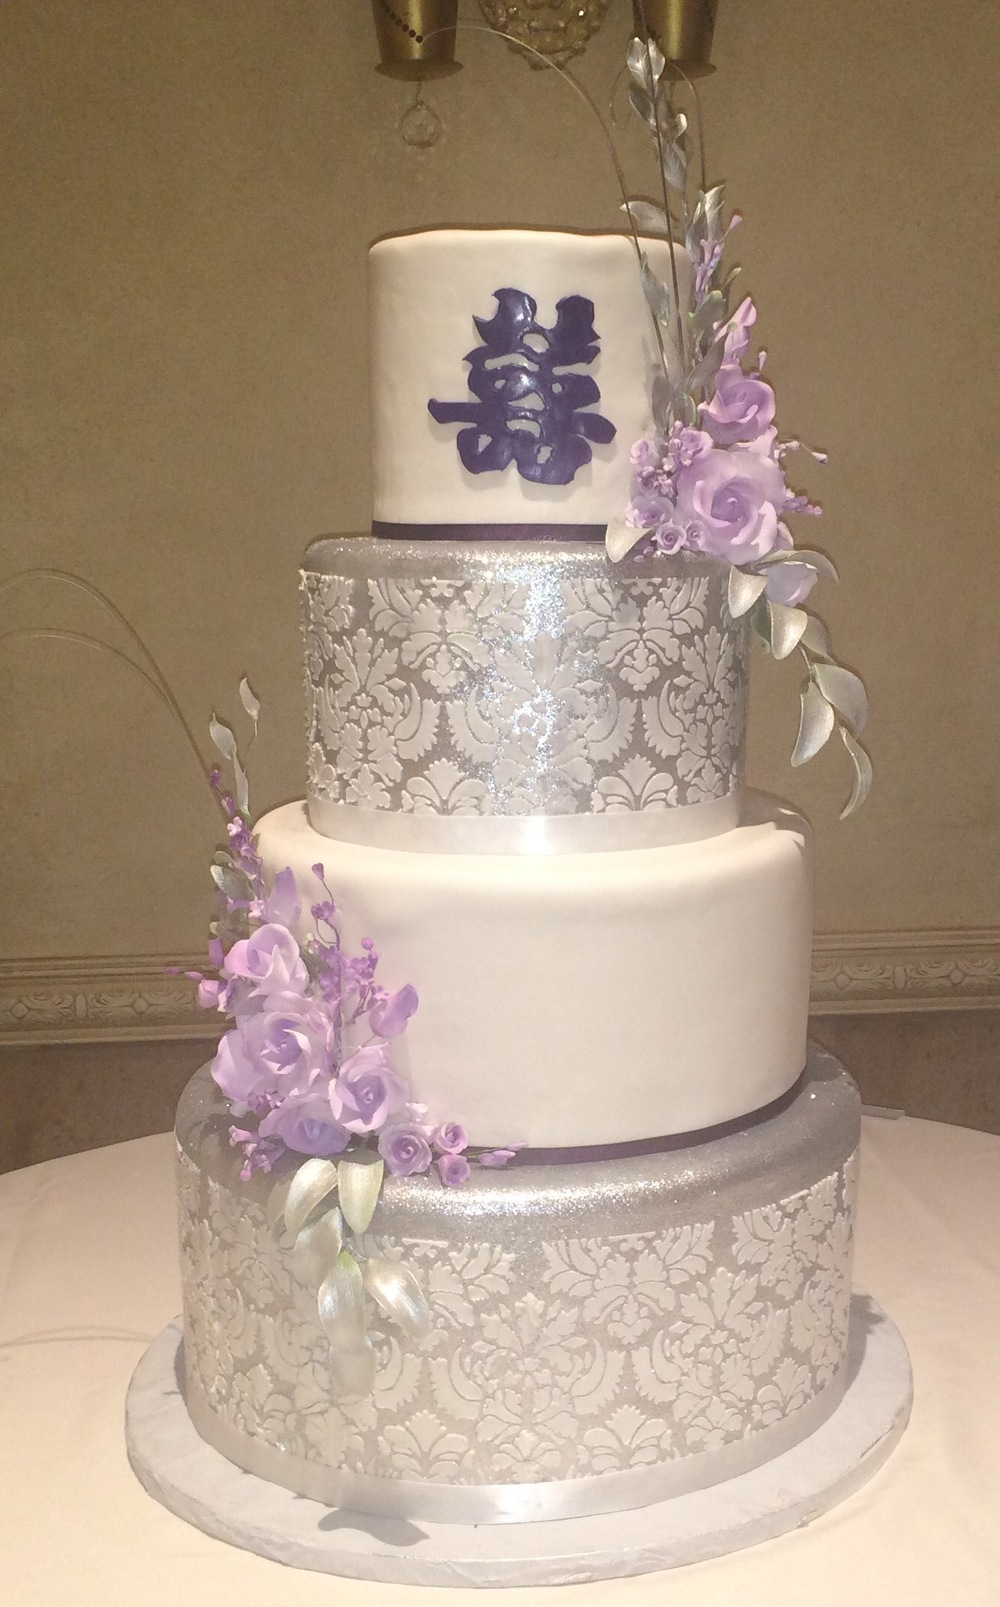 Silver Dusted With White Damask Stenciling Lavender Floral Spray.jpg